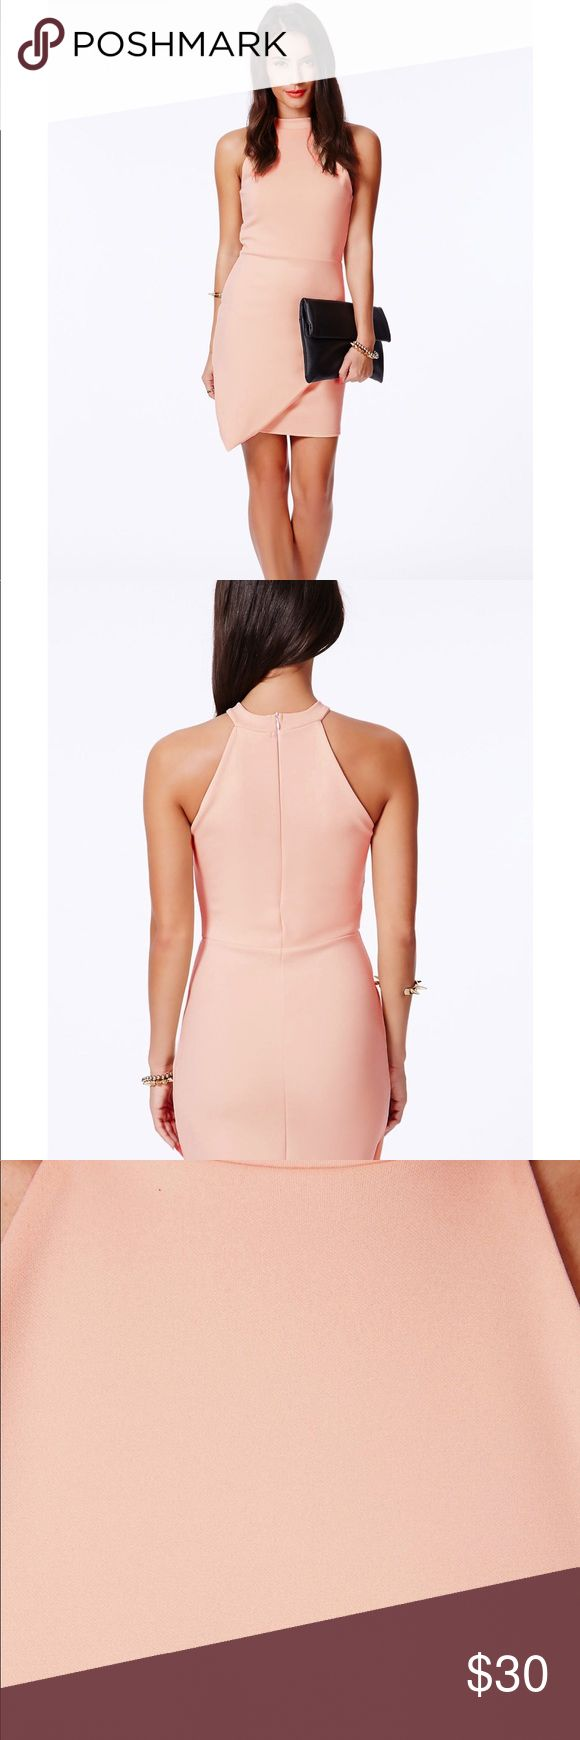 New Missguided Faustina Coral High Neck Dress NEW bodicon asymmetric dress! Perfect for special occasions or a night out. Pairs perfectly with black ankle strap heels and a black clutch. Missguided Dresses